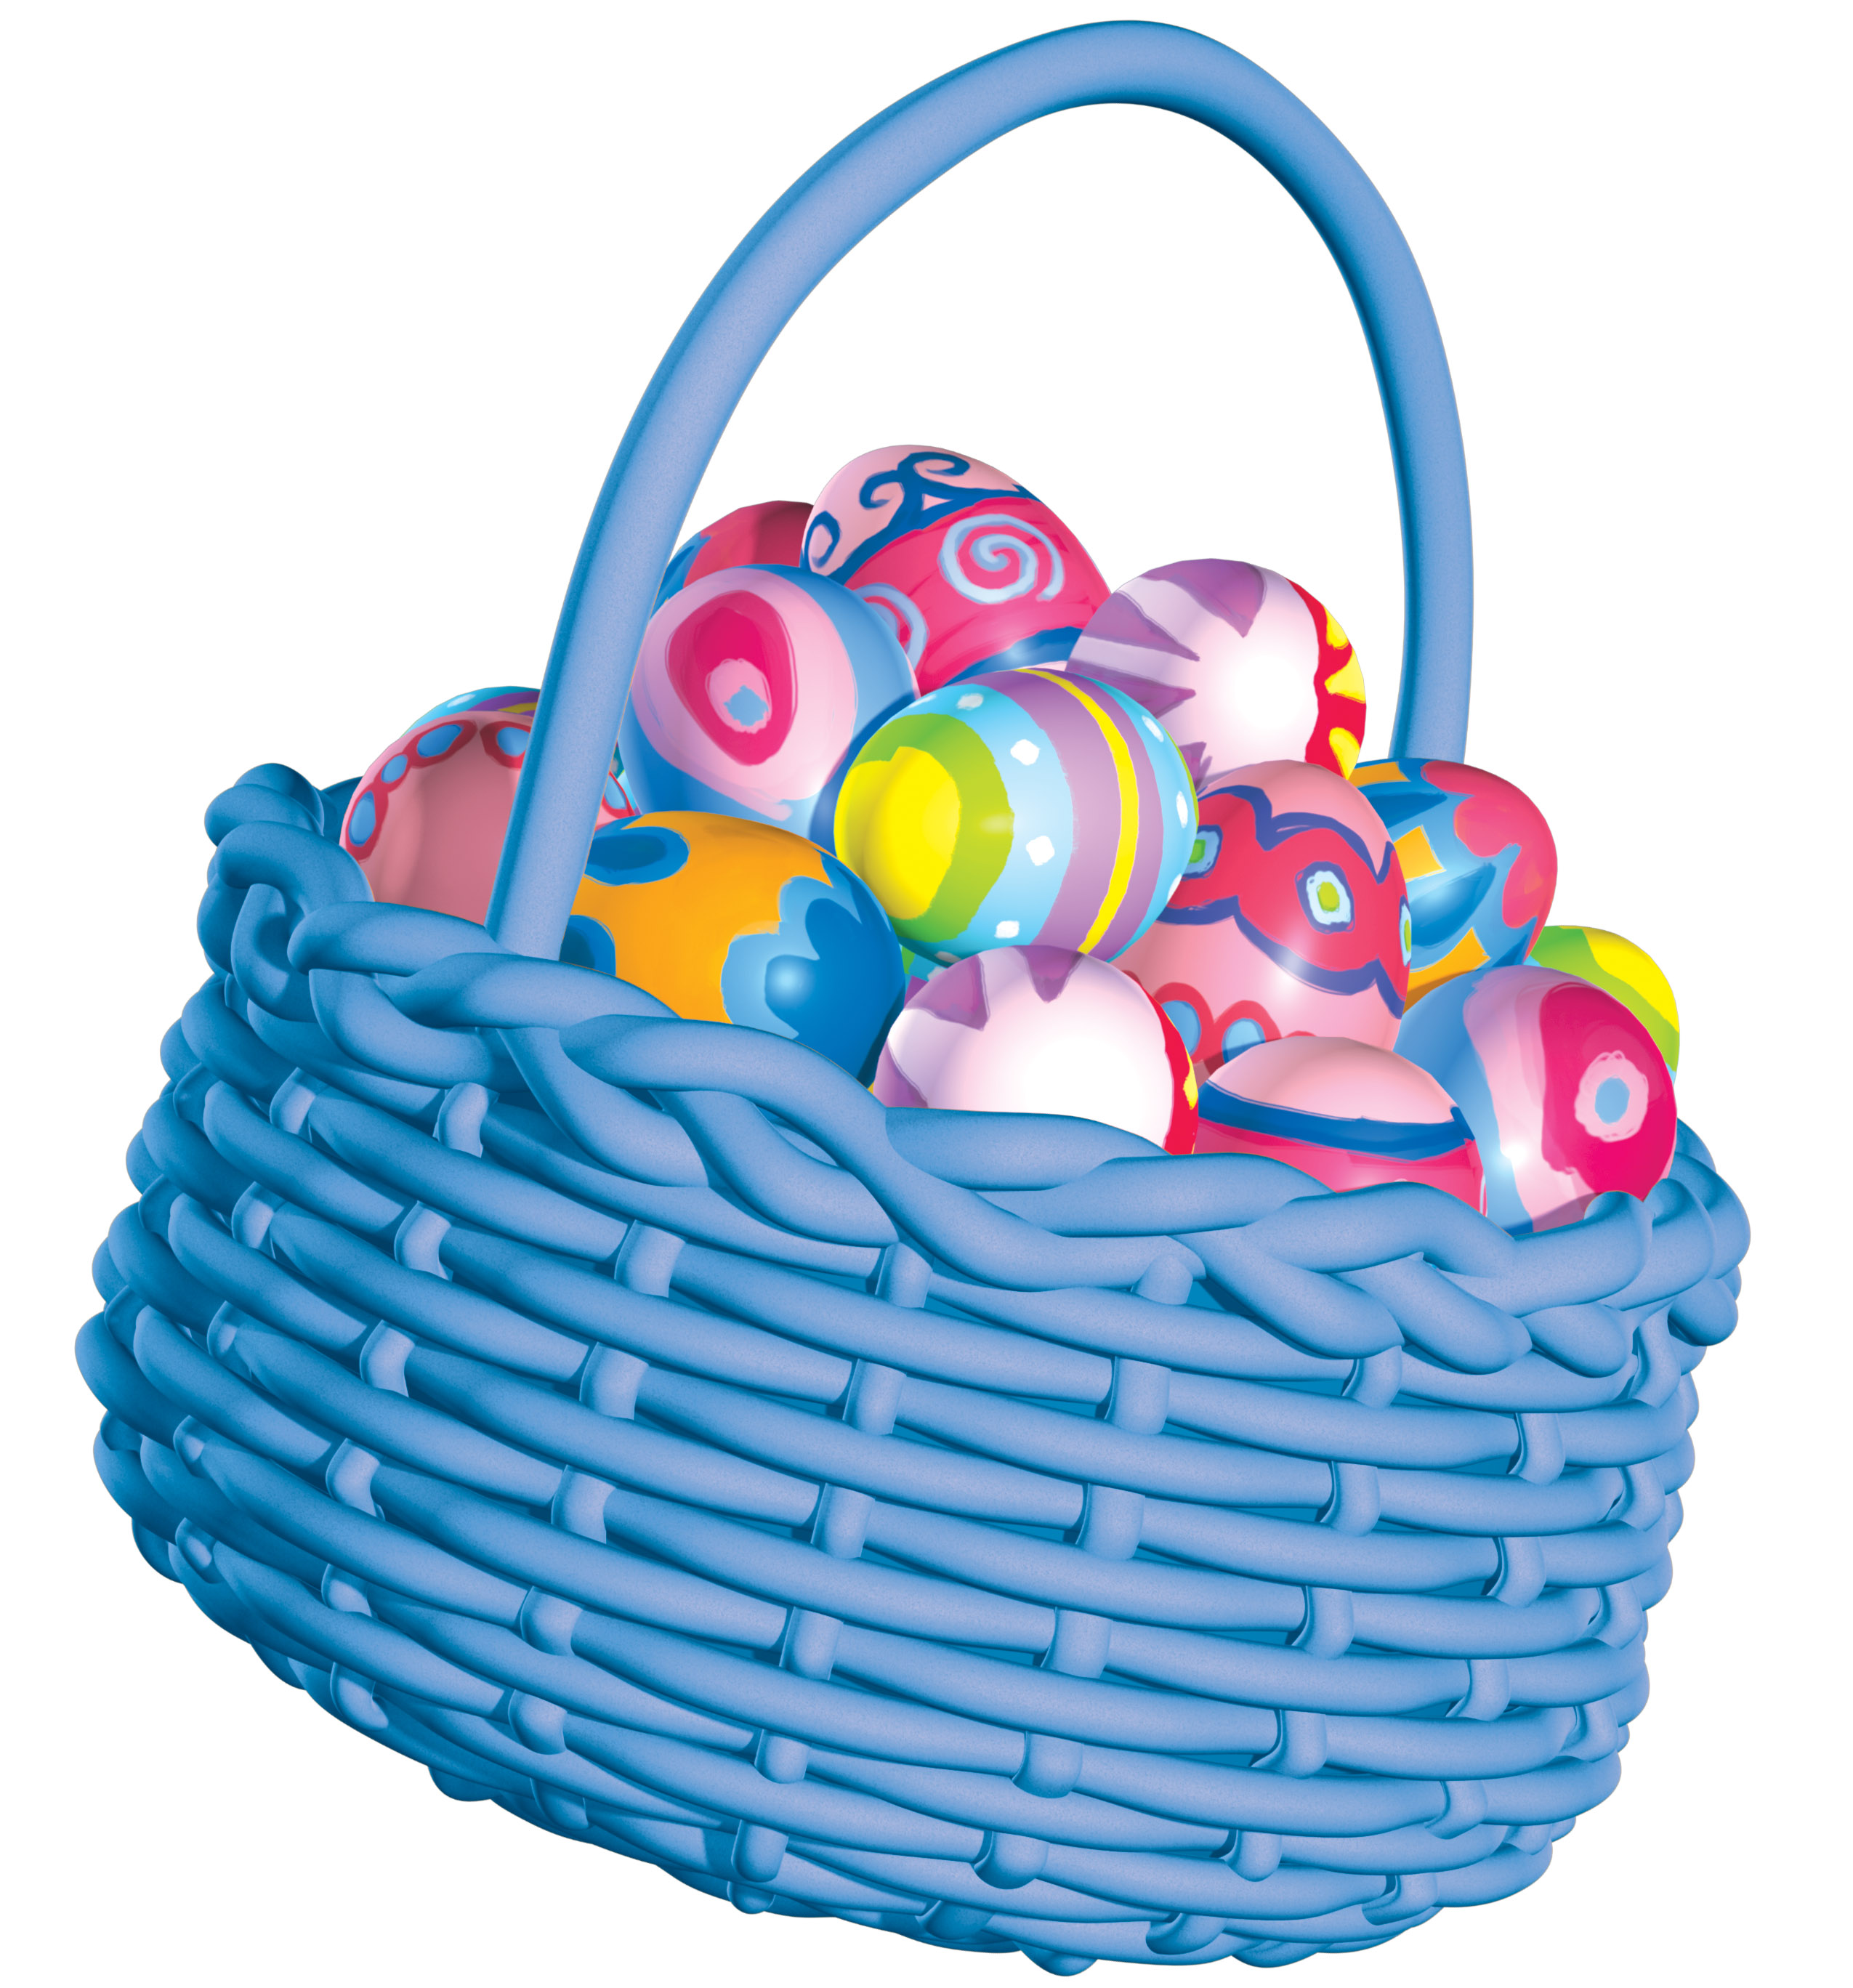 clip art for easter baskets - photo #29